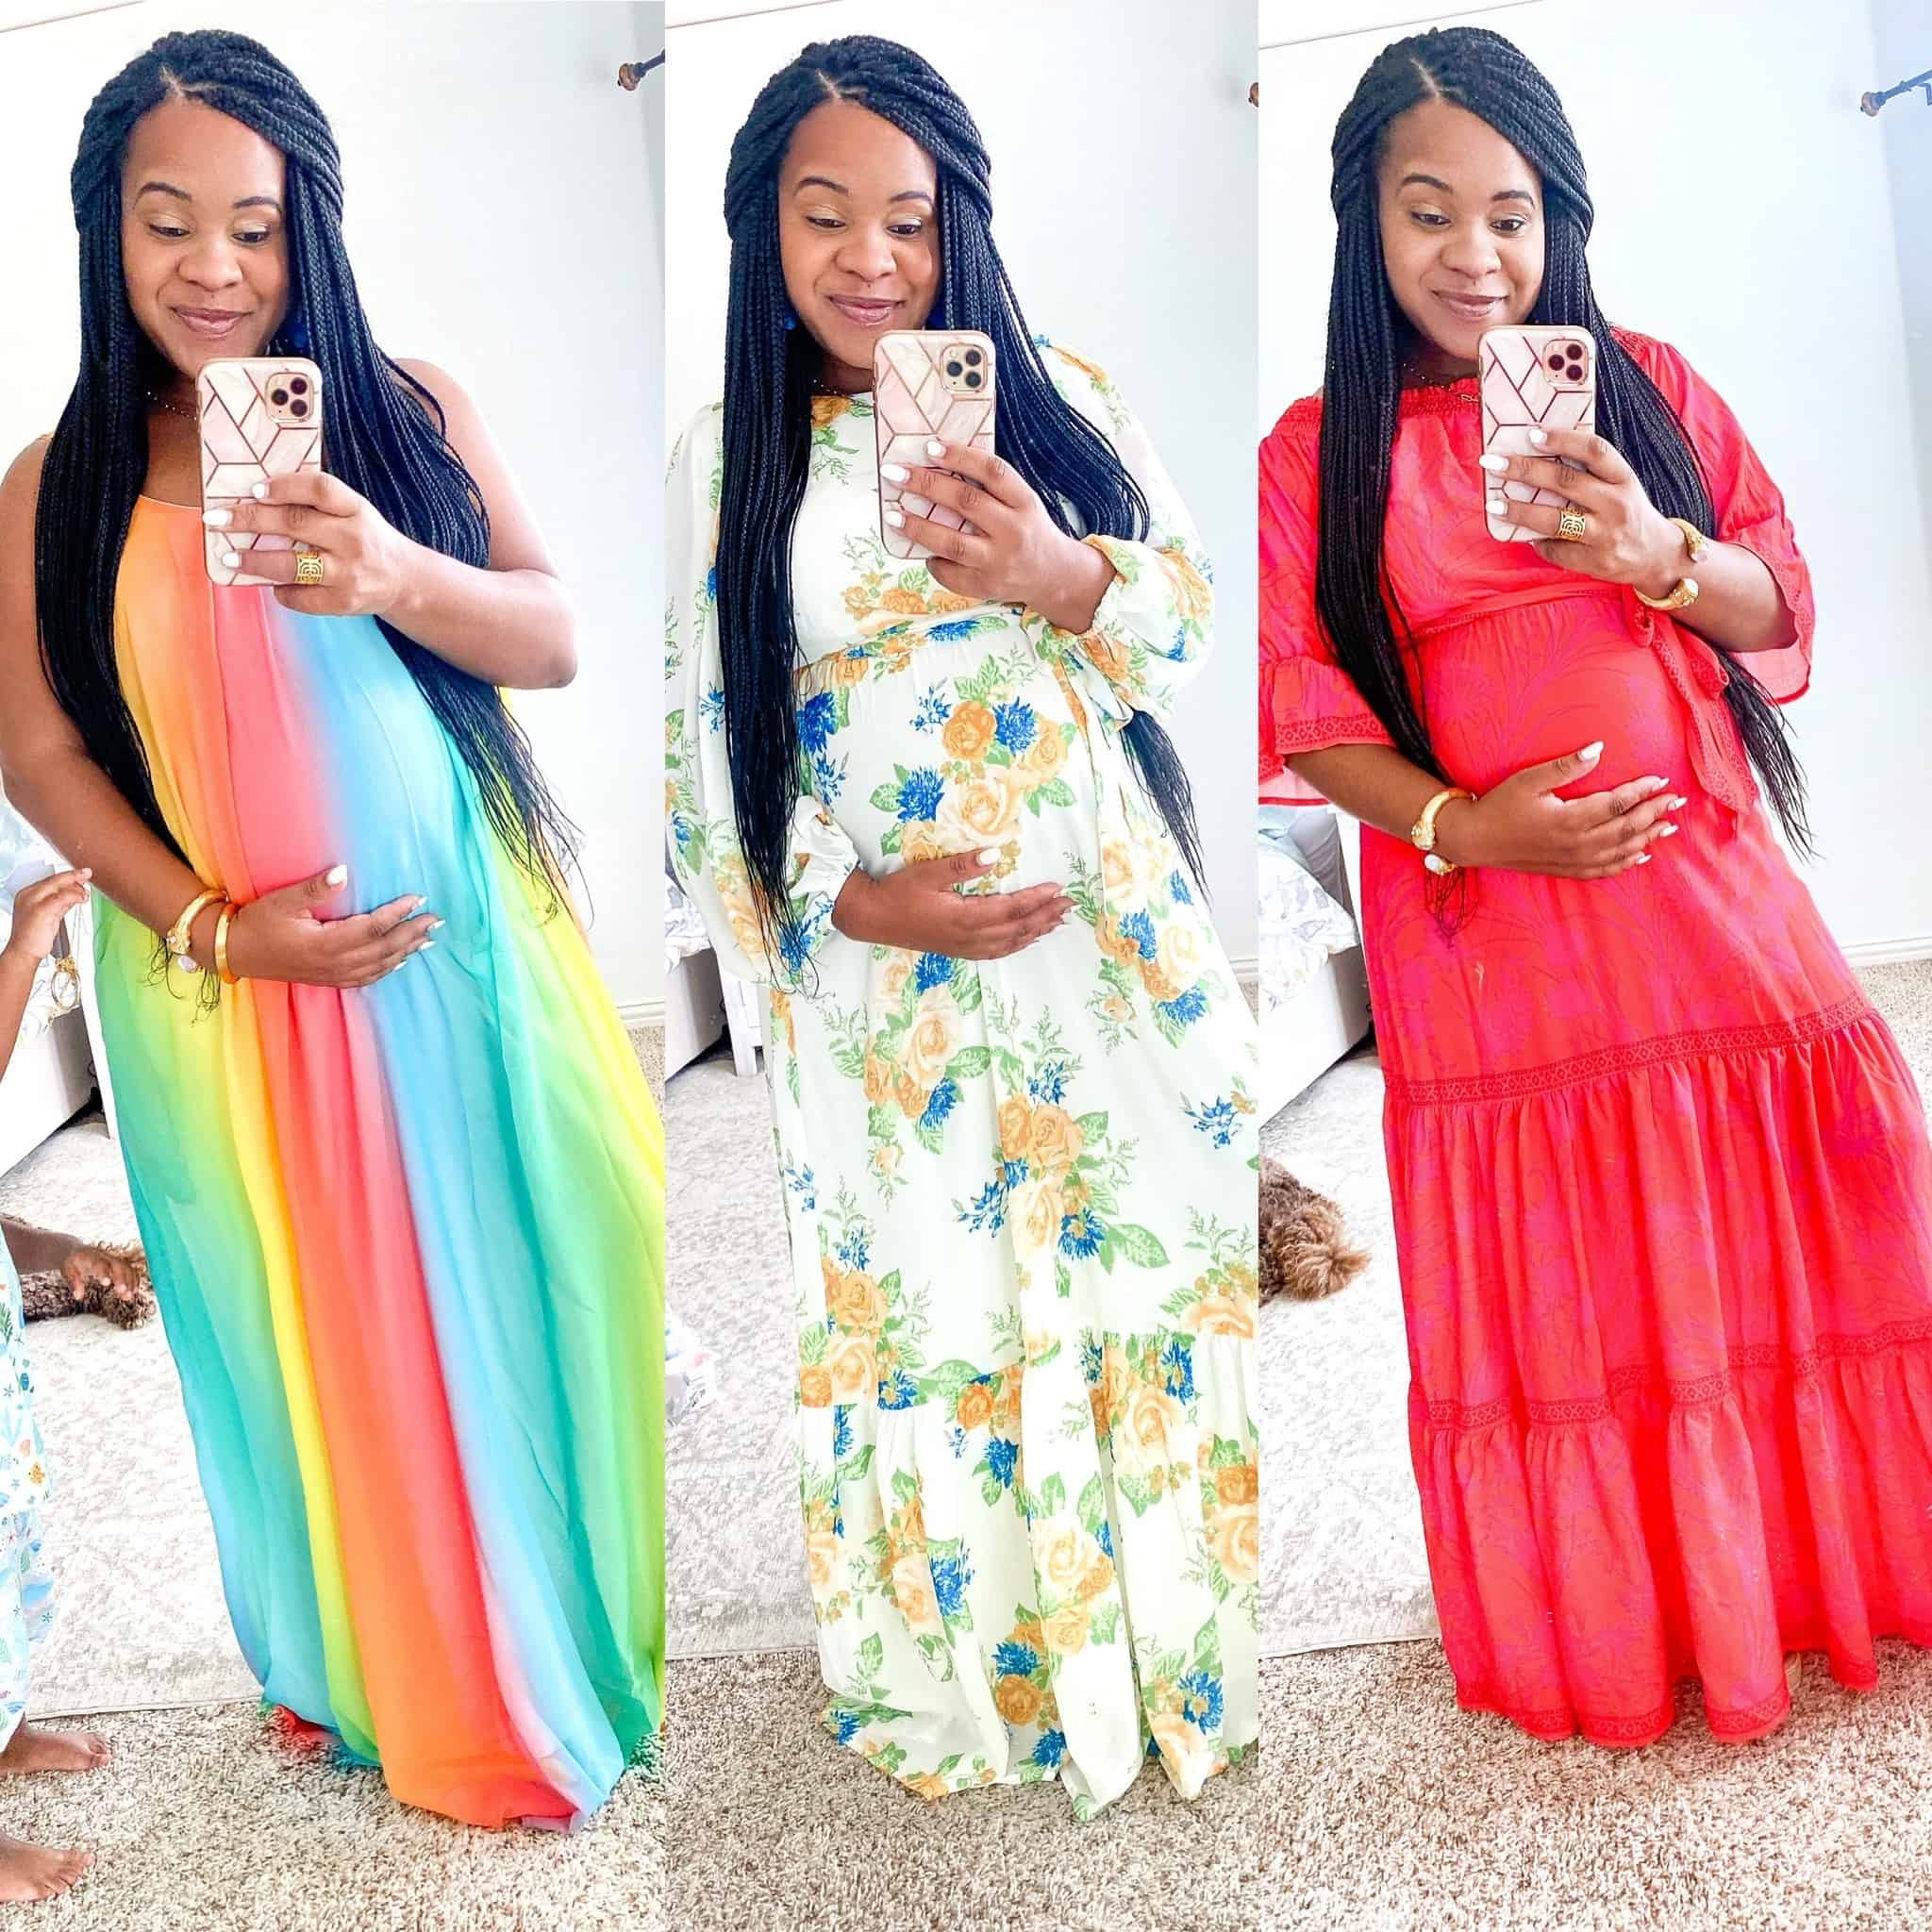 Maxi Dresses by popular Dallas fashion blog, Glamorous Versatility: collage image of a woman wearing a rainbow maxi, floral maxi and red maxi dress.